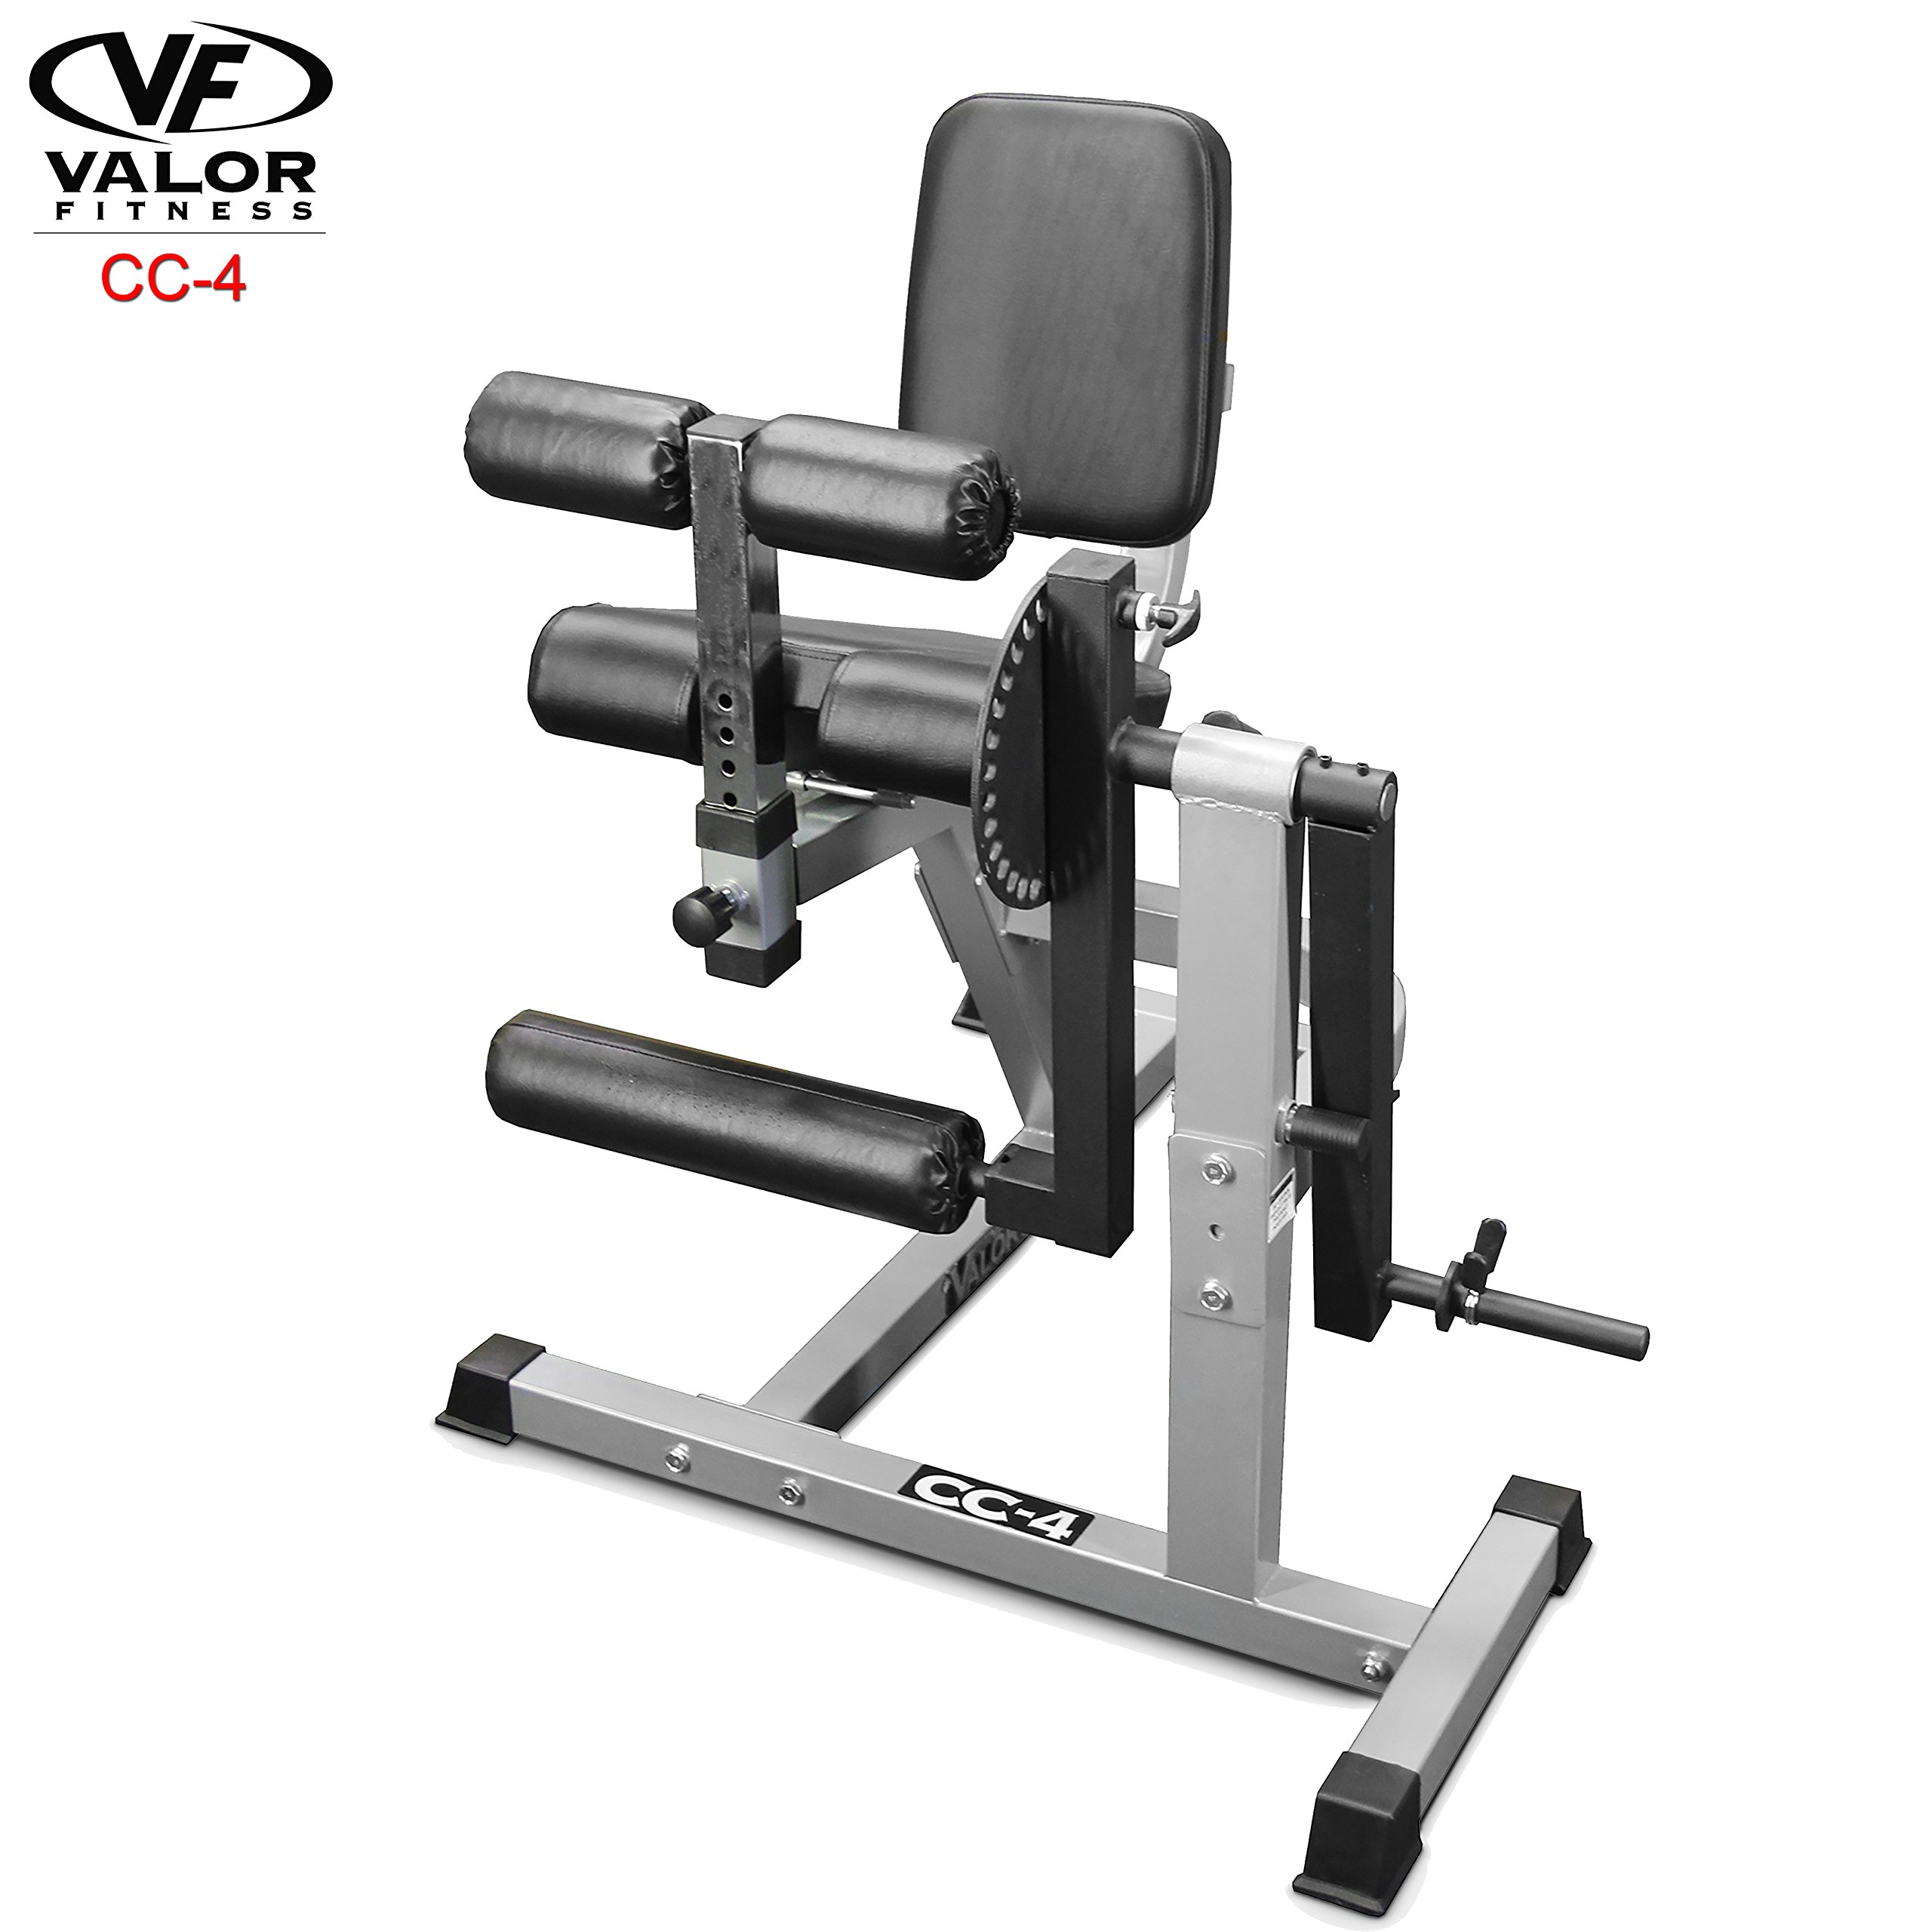 Valor Fitness CC-4 Adjustable Leg Curl Machine by Valor Fitness